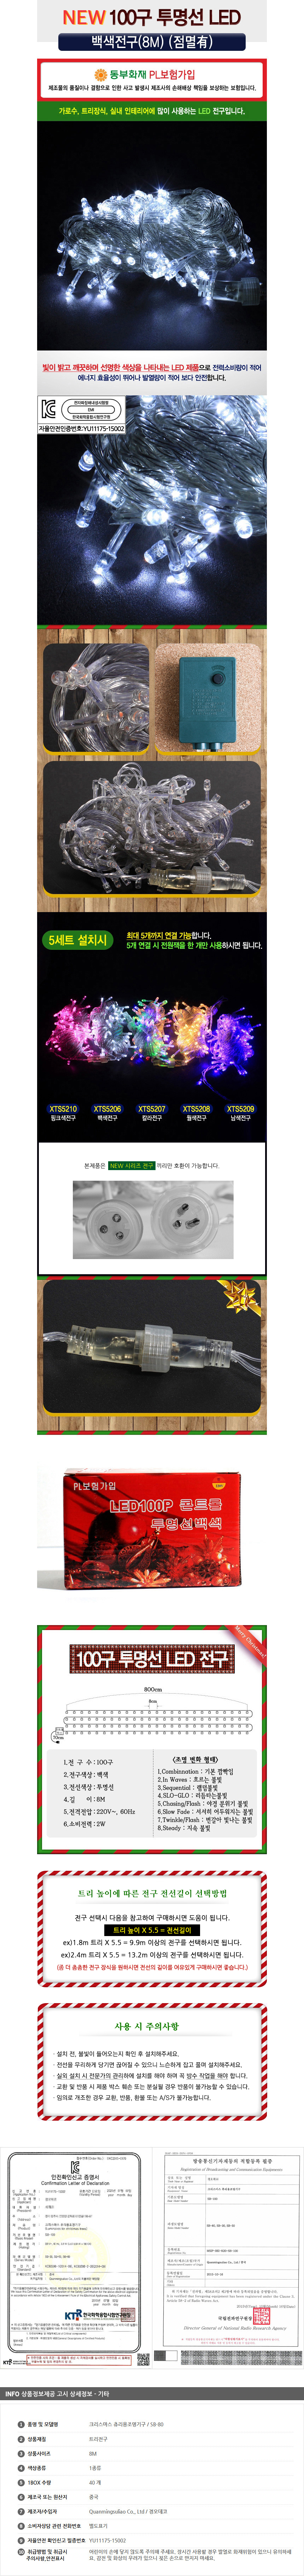 [ WINEQOK ] Christmas Goods / Transparent line LED white light bulb M blinking No connection possible _ for tree